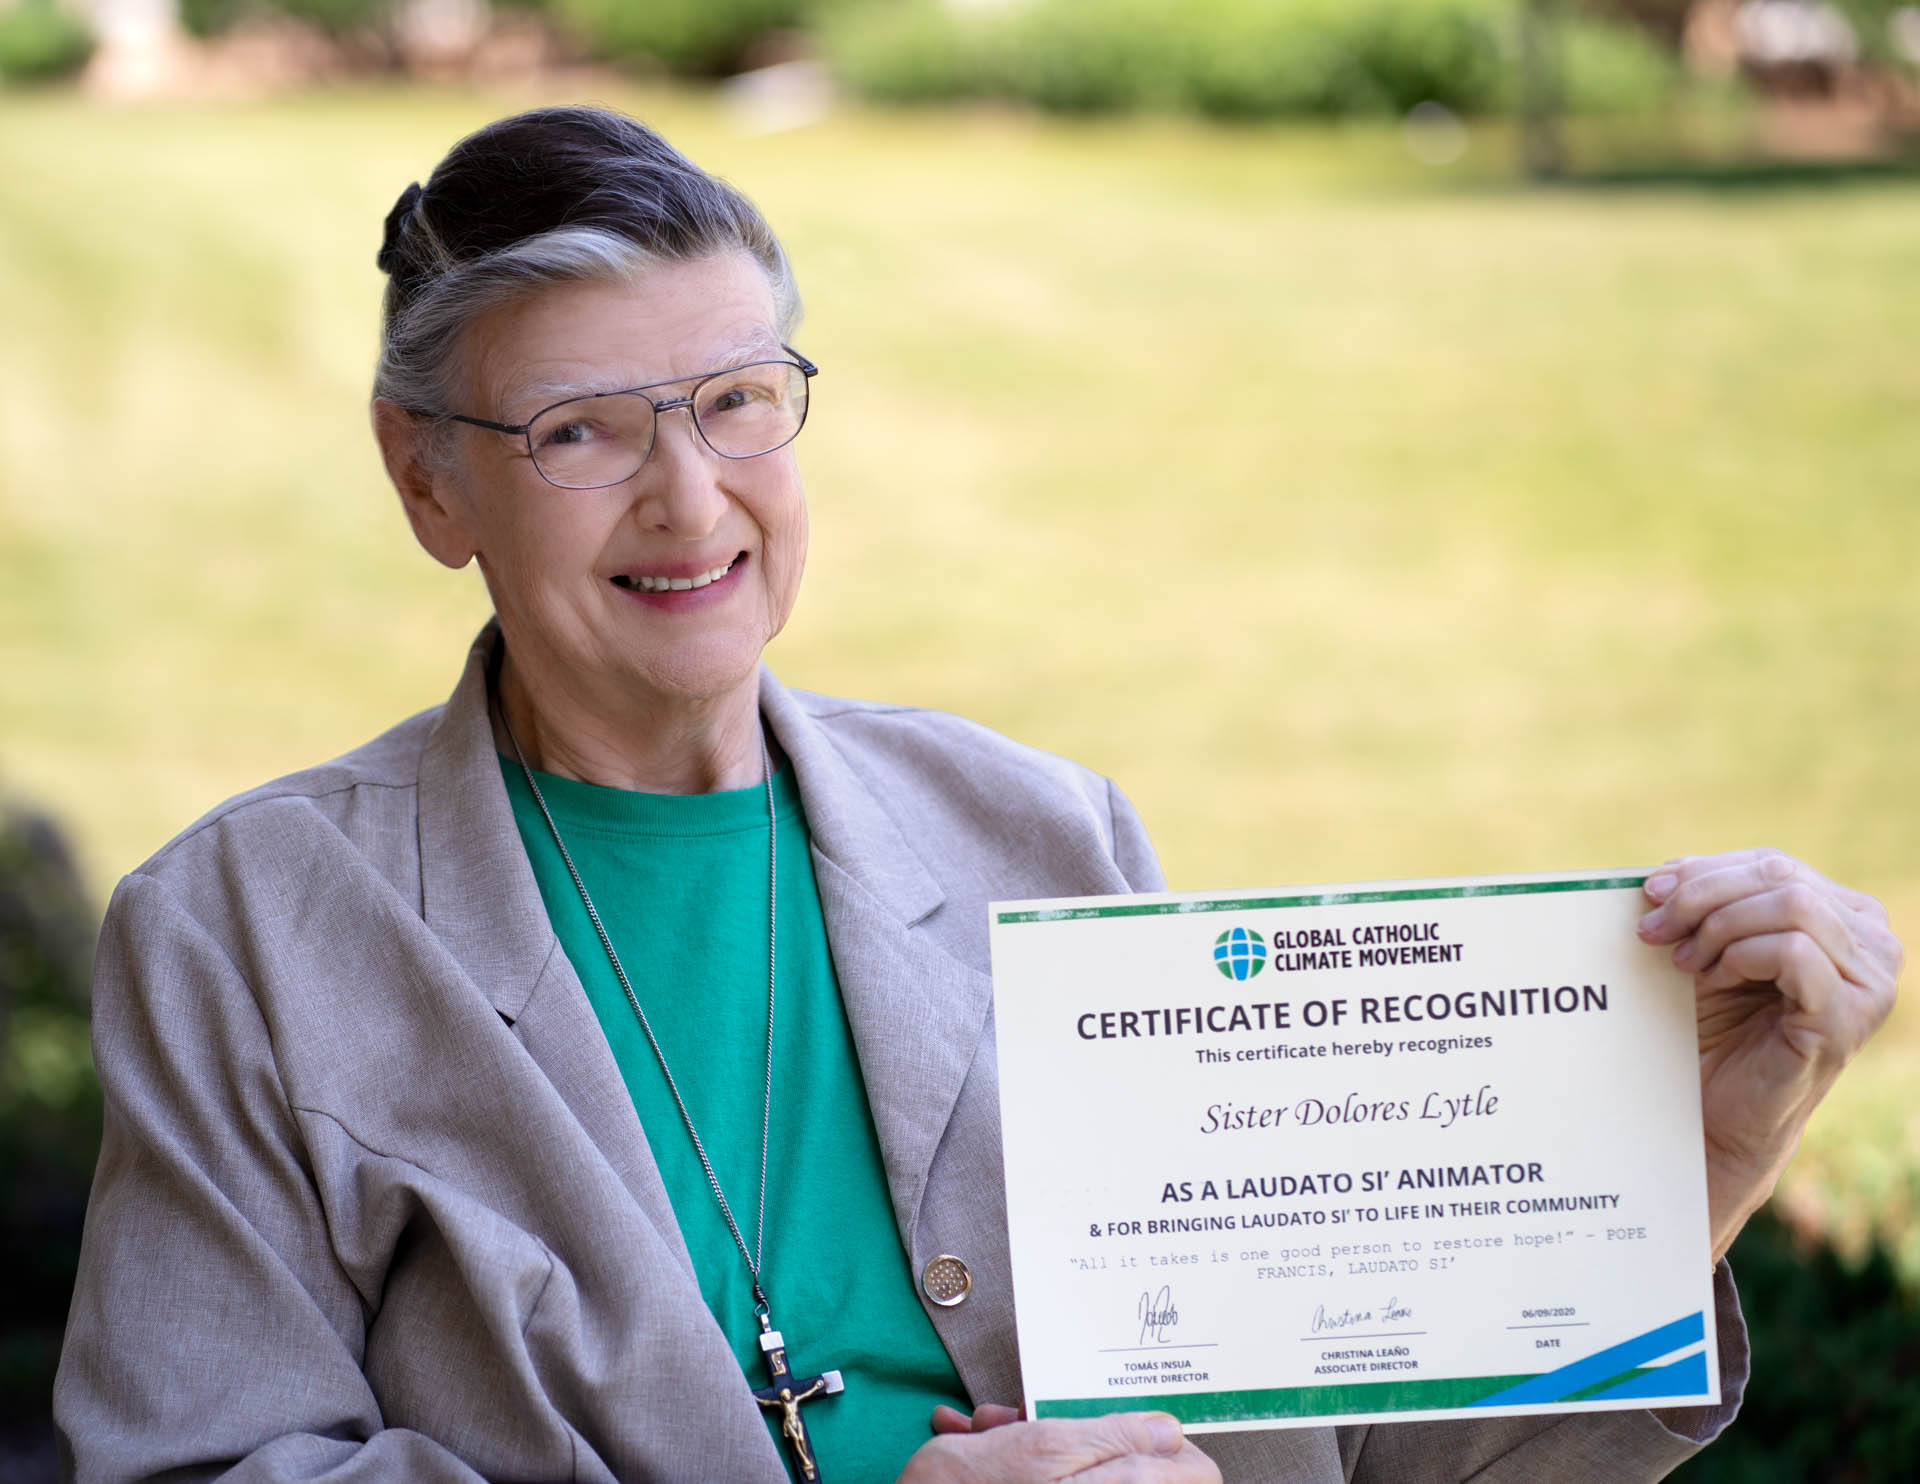 Sister Dolores with her Certificate